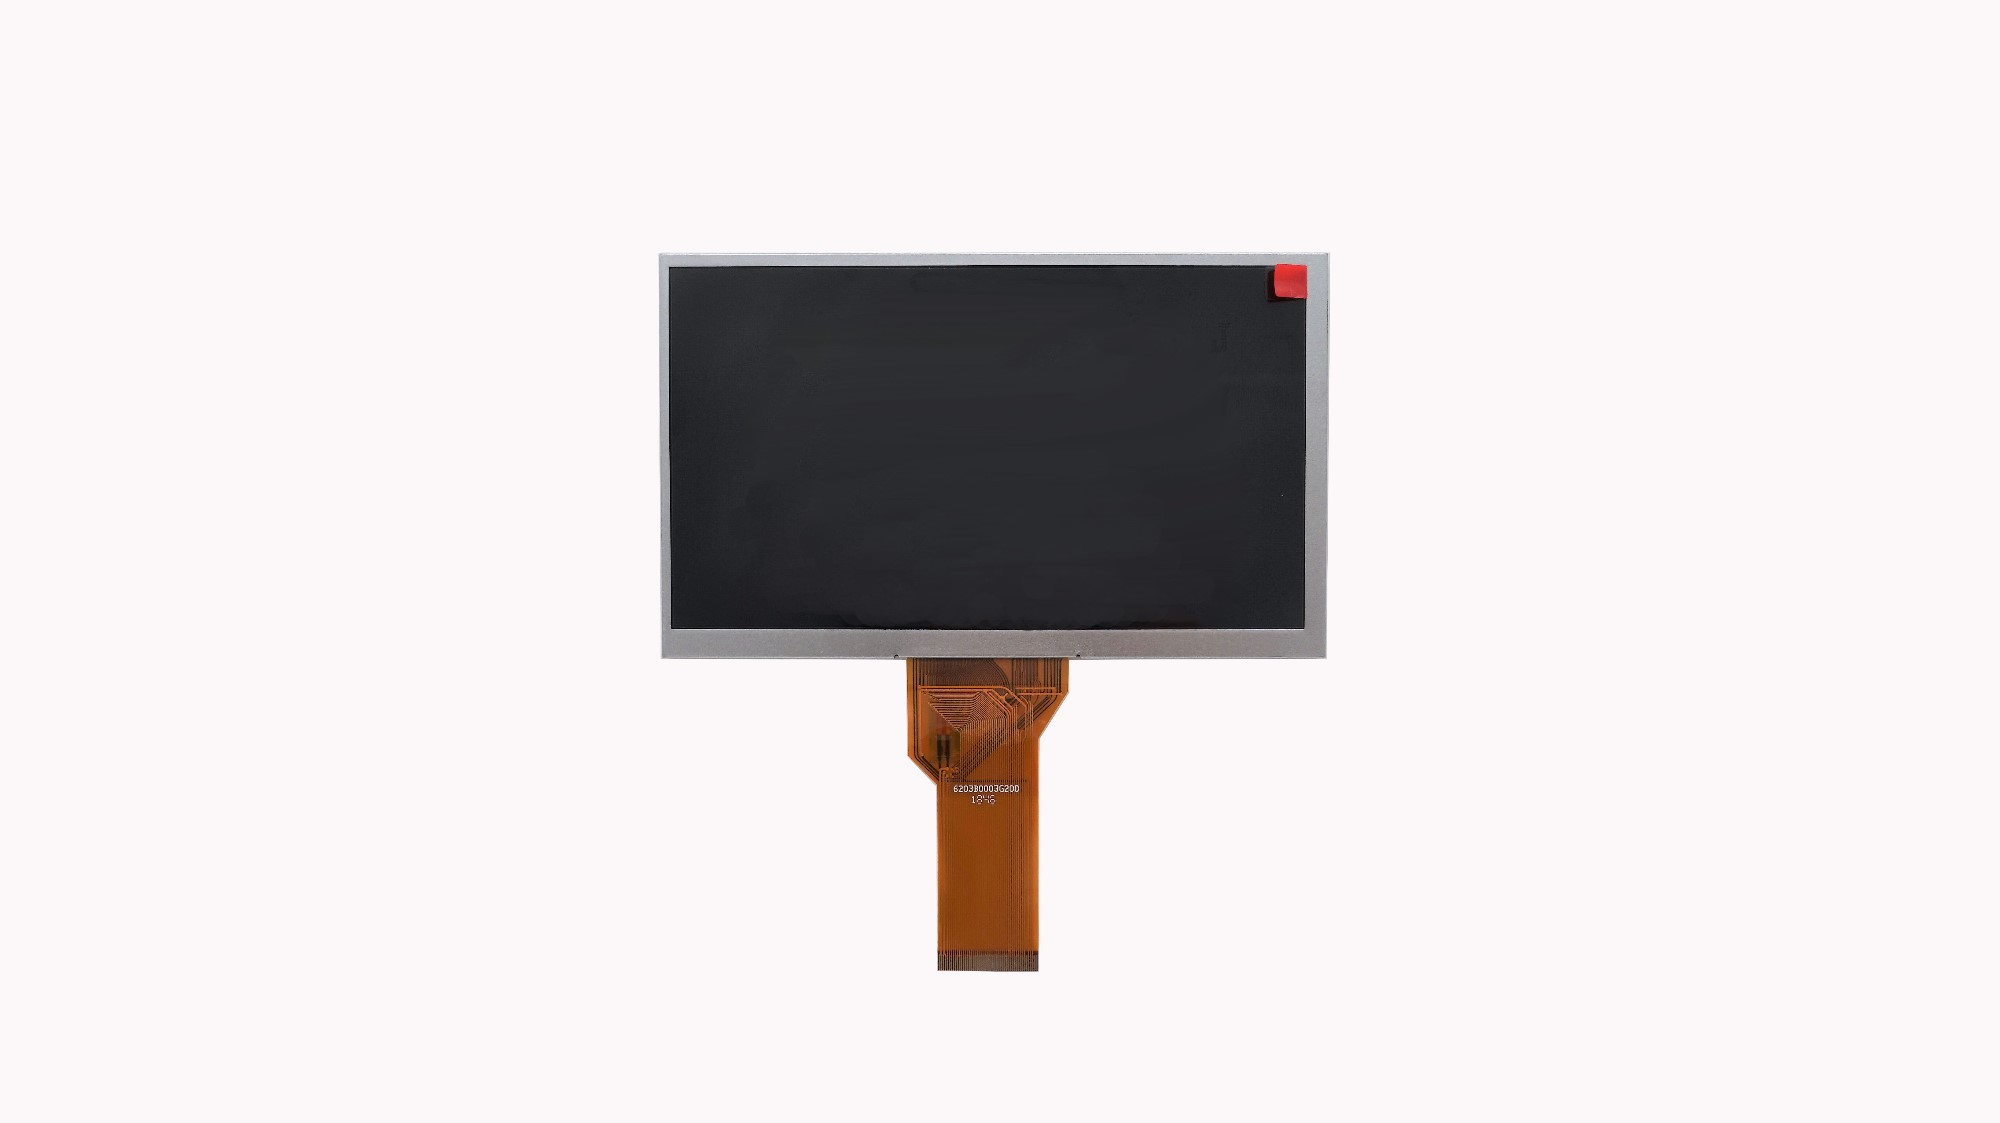 Industrial 7.0 Inch TFT LCD Display With 800x480